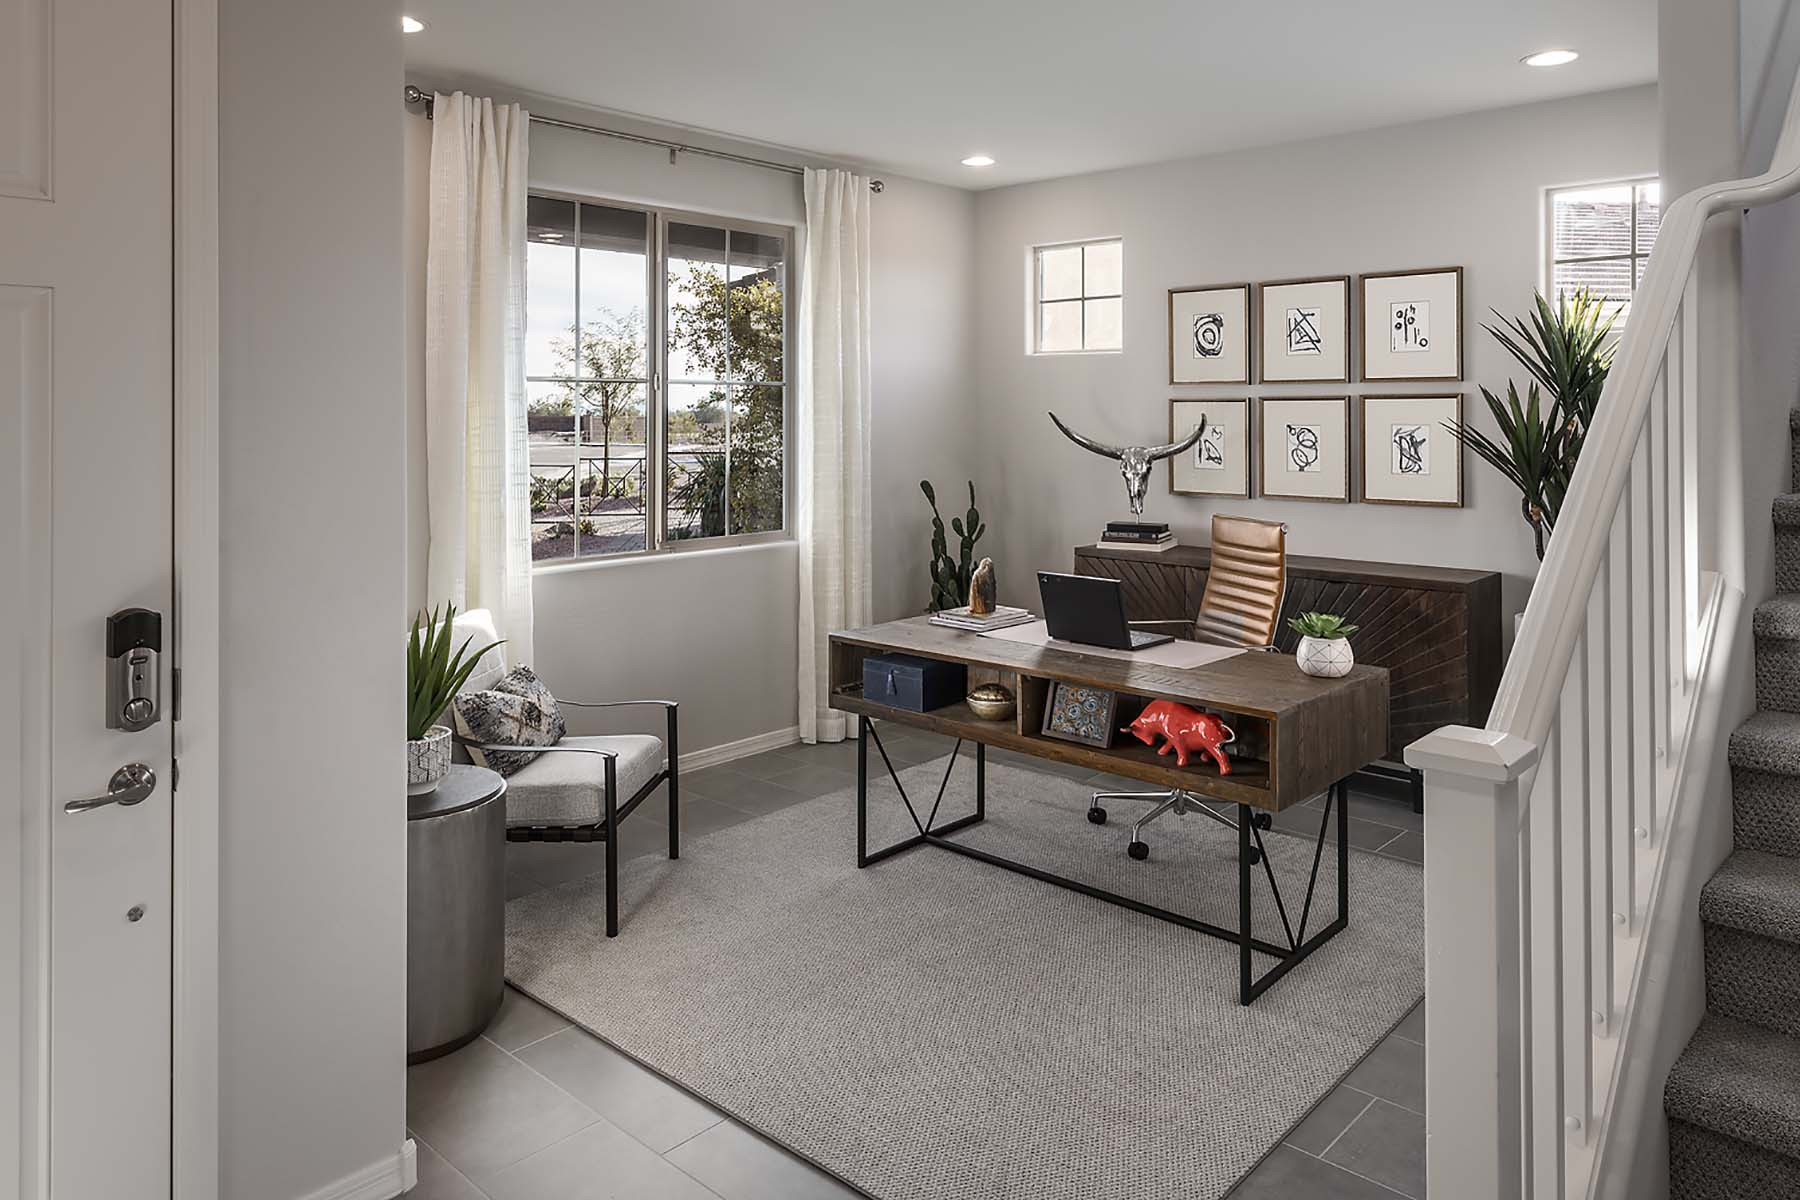 Willowleaf Plan Study Room at Brookside at Arroyo Seco in Buckeye Arizona by Mattamy Homes